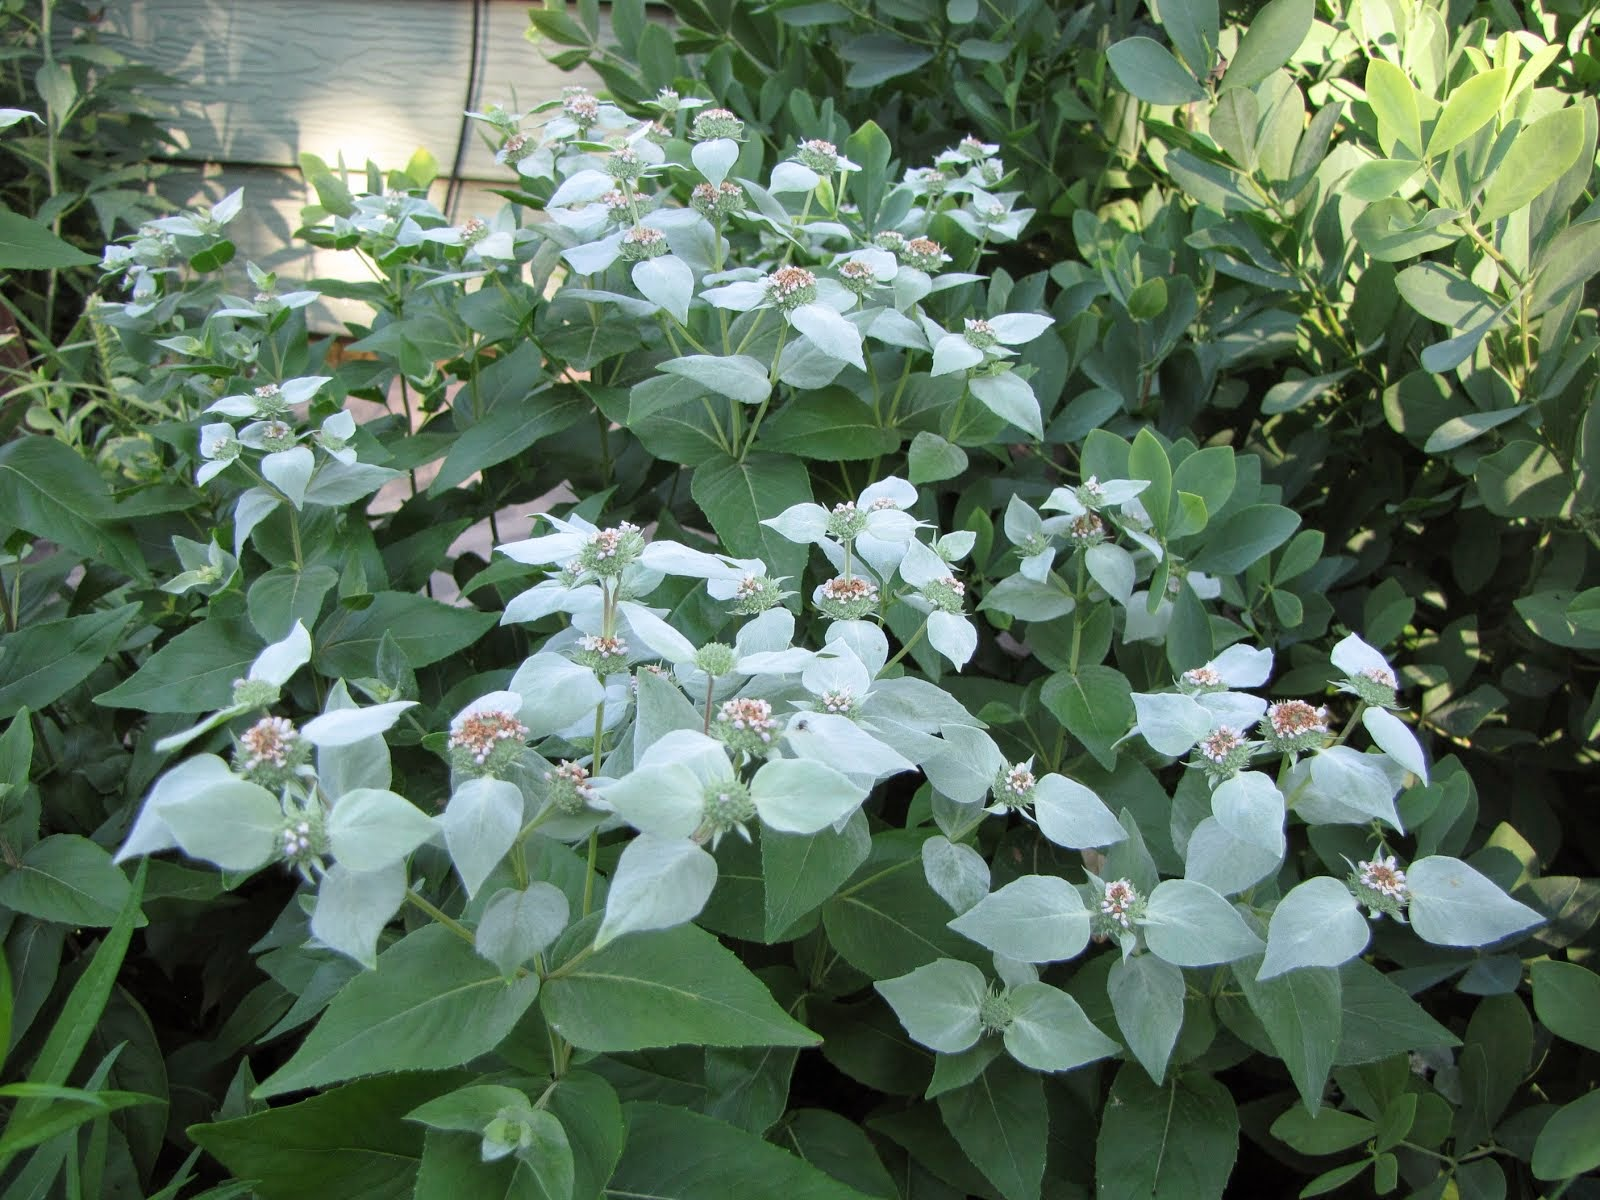 Short-toothed mountain mint